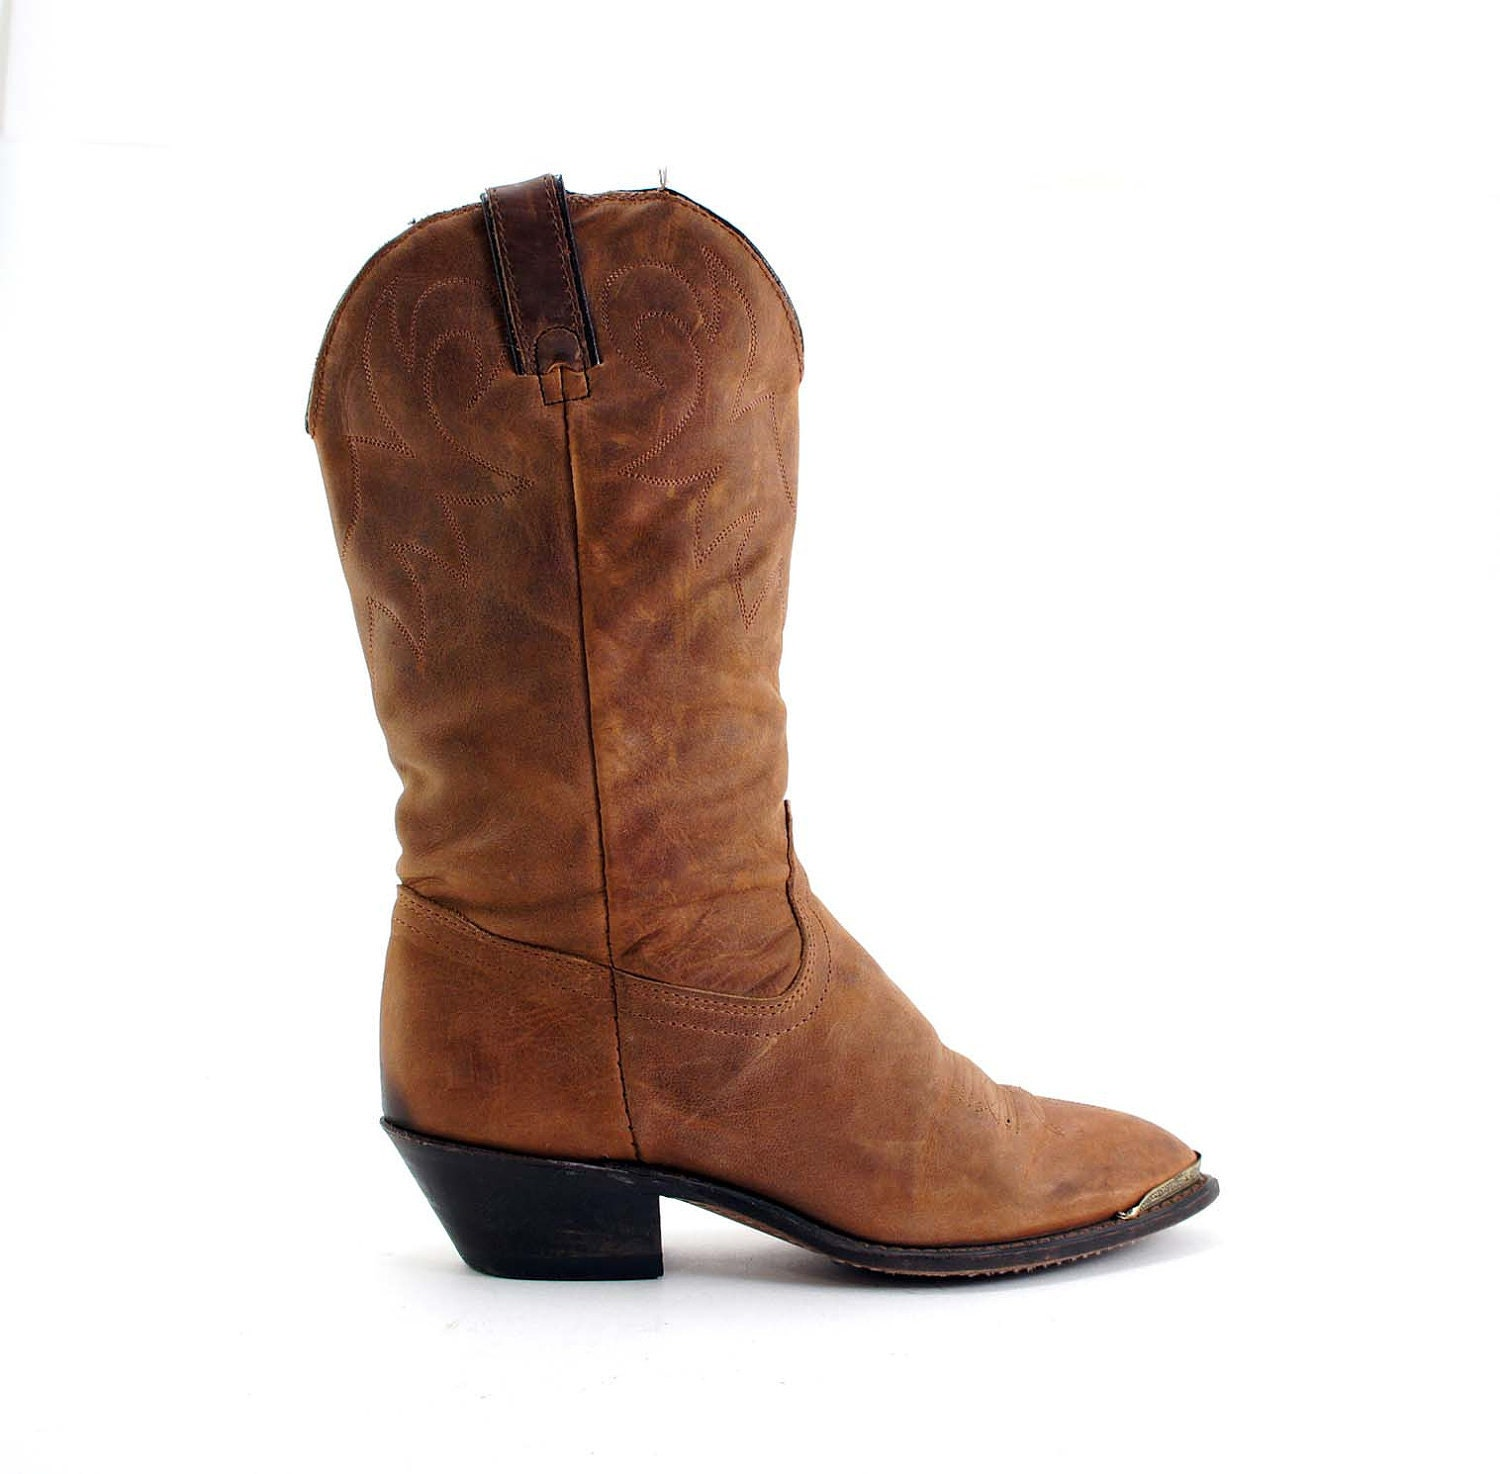 s cowboy boots by durango in a light brown leather